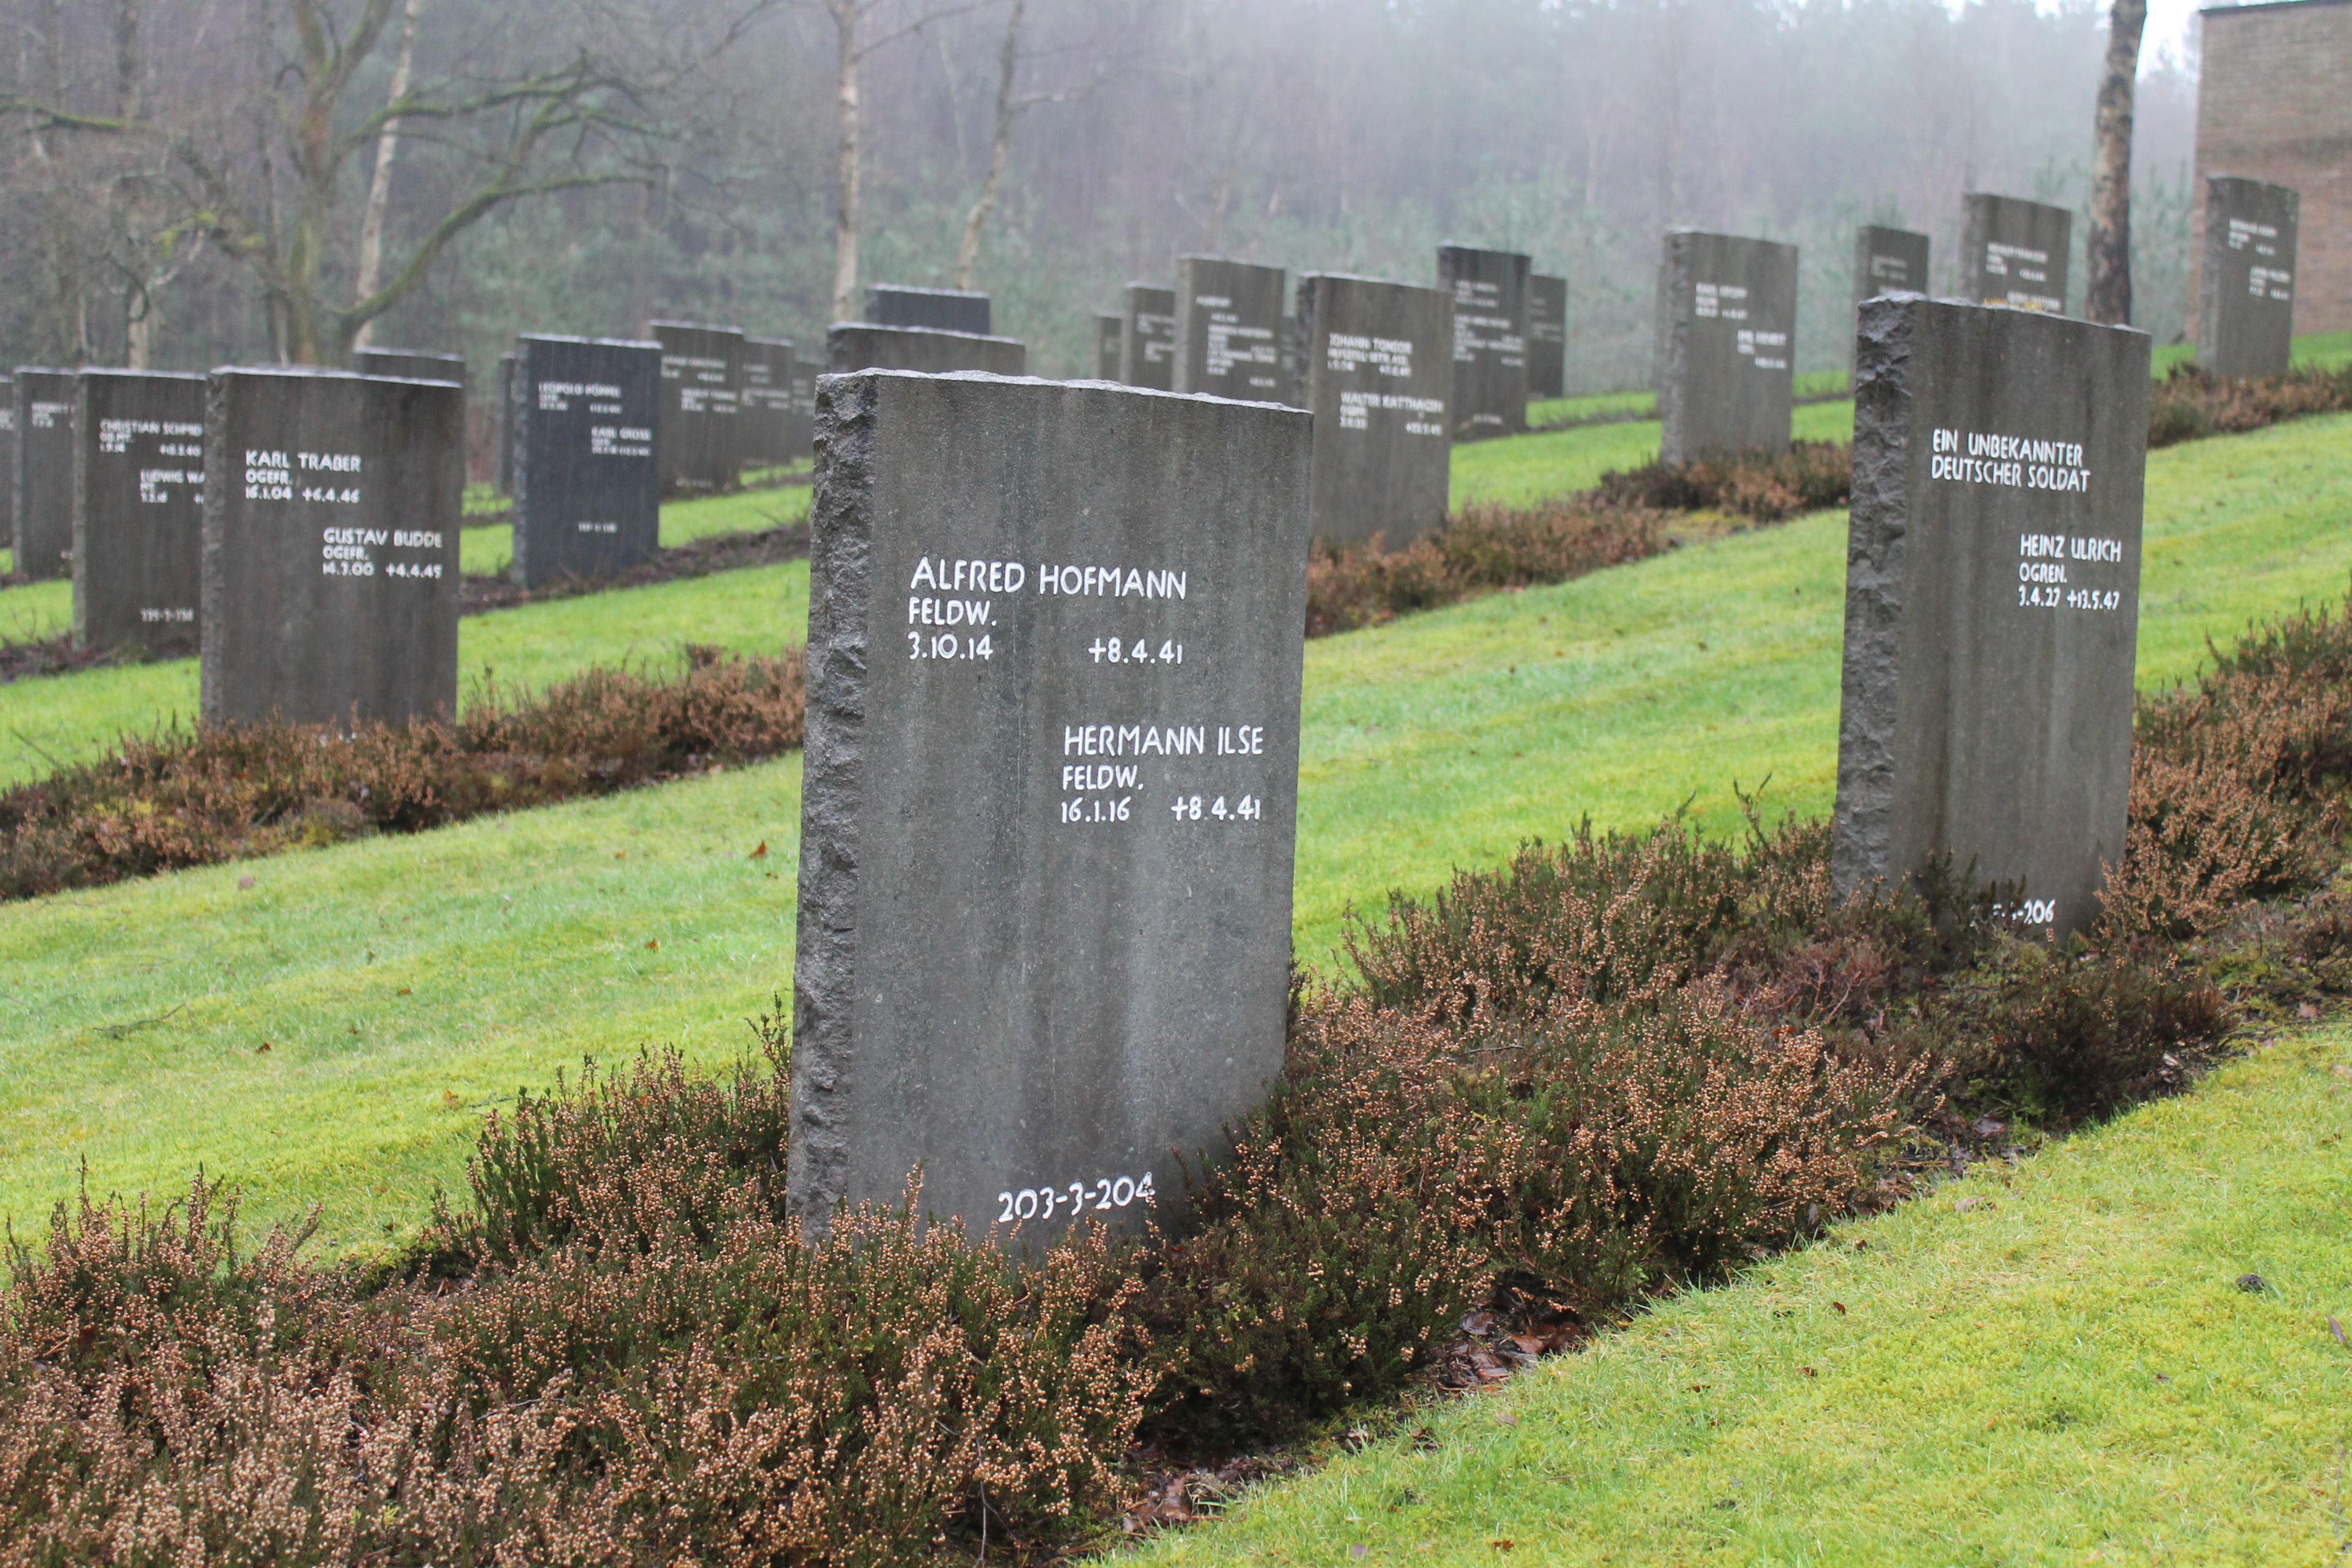 Fw. Hofmann & Fw. Ilse both now lie at the German Military Cemetery, Cannock Chase, Staffordshire